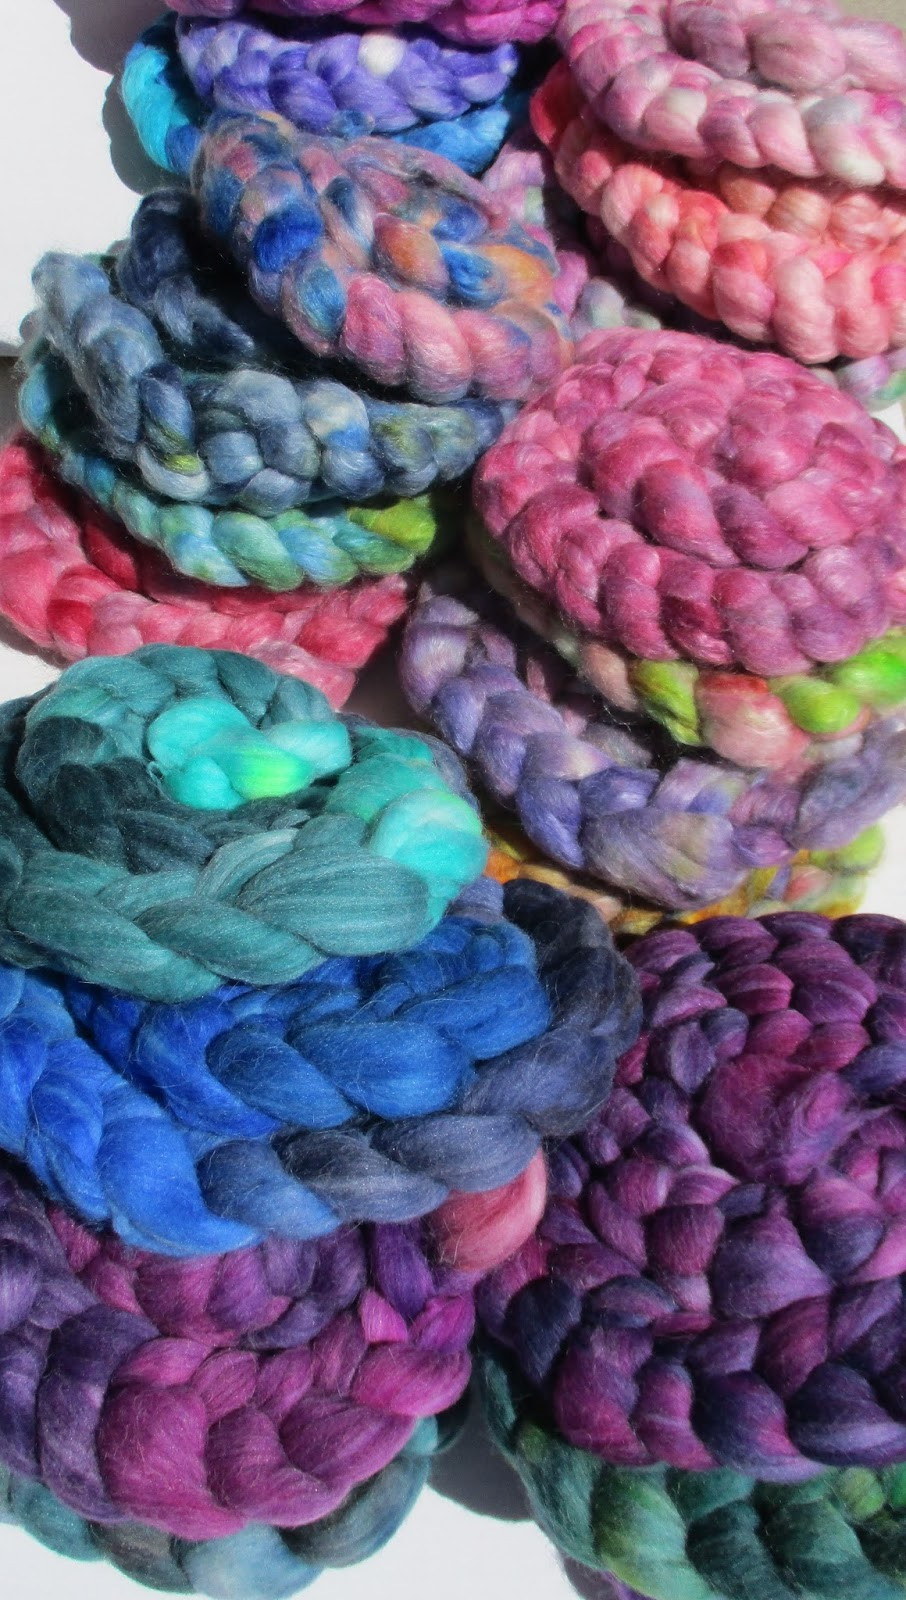 Yarn Fairy And The Pixies: Where Oh Were Has Our Little